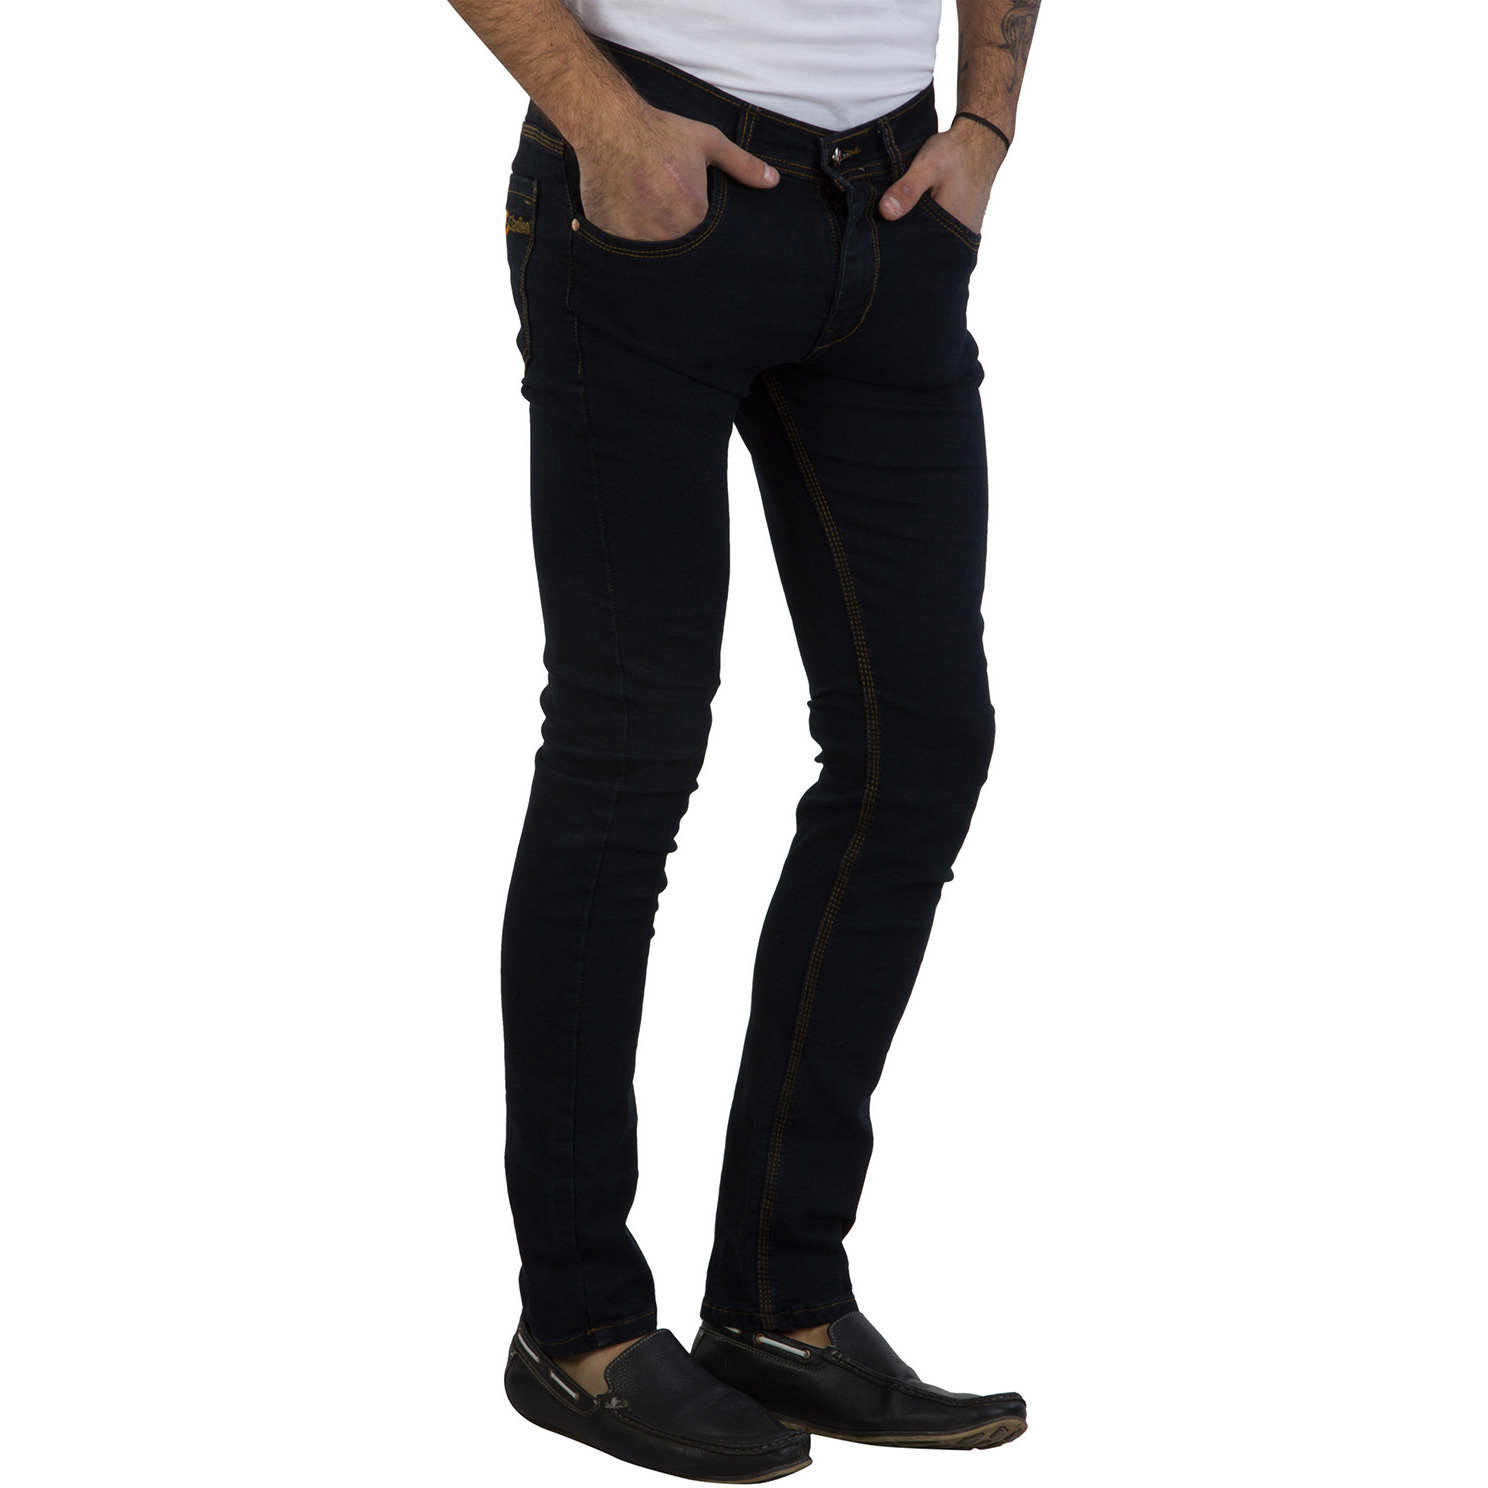 Mens Black Casual Jeans Slim Fit Stylish Denim